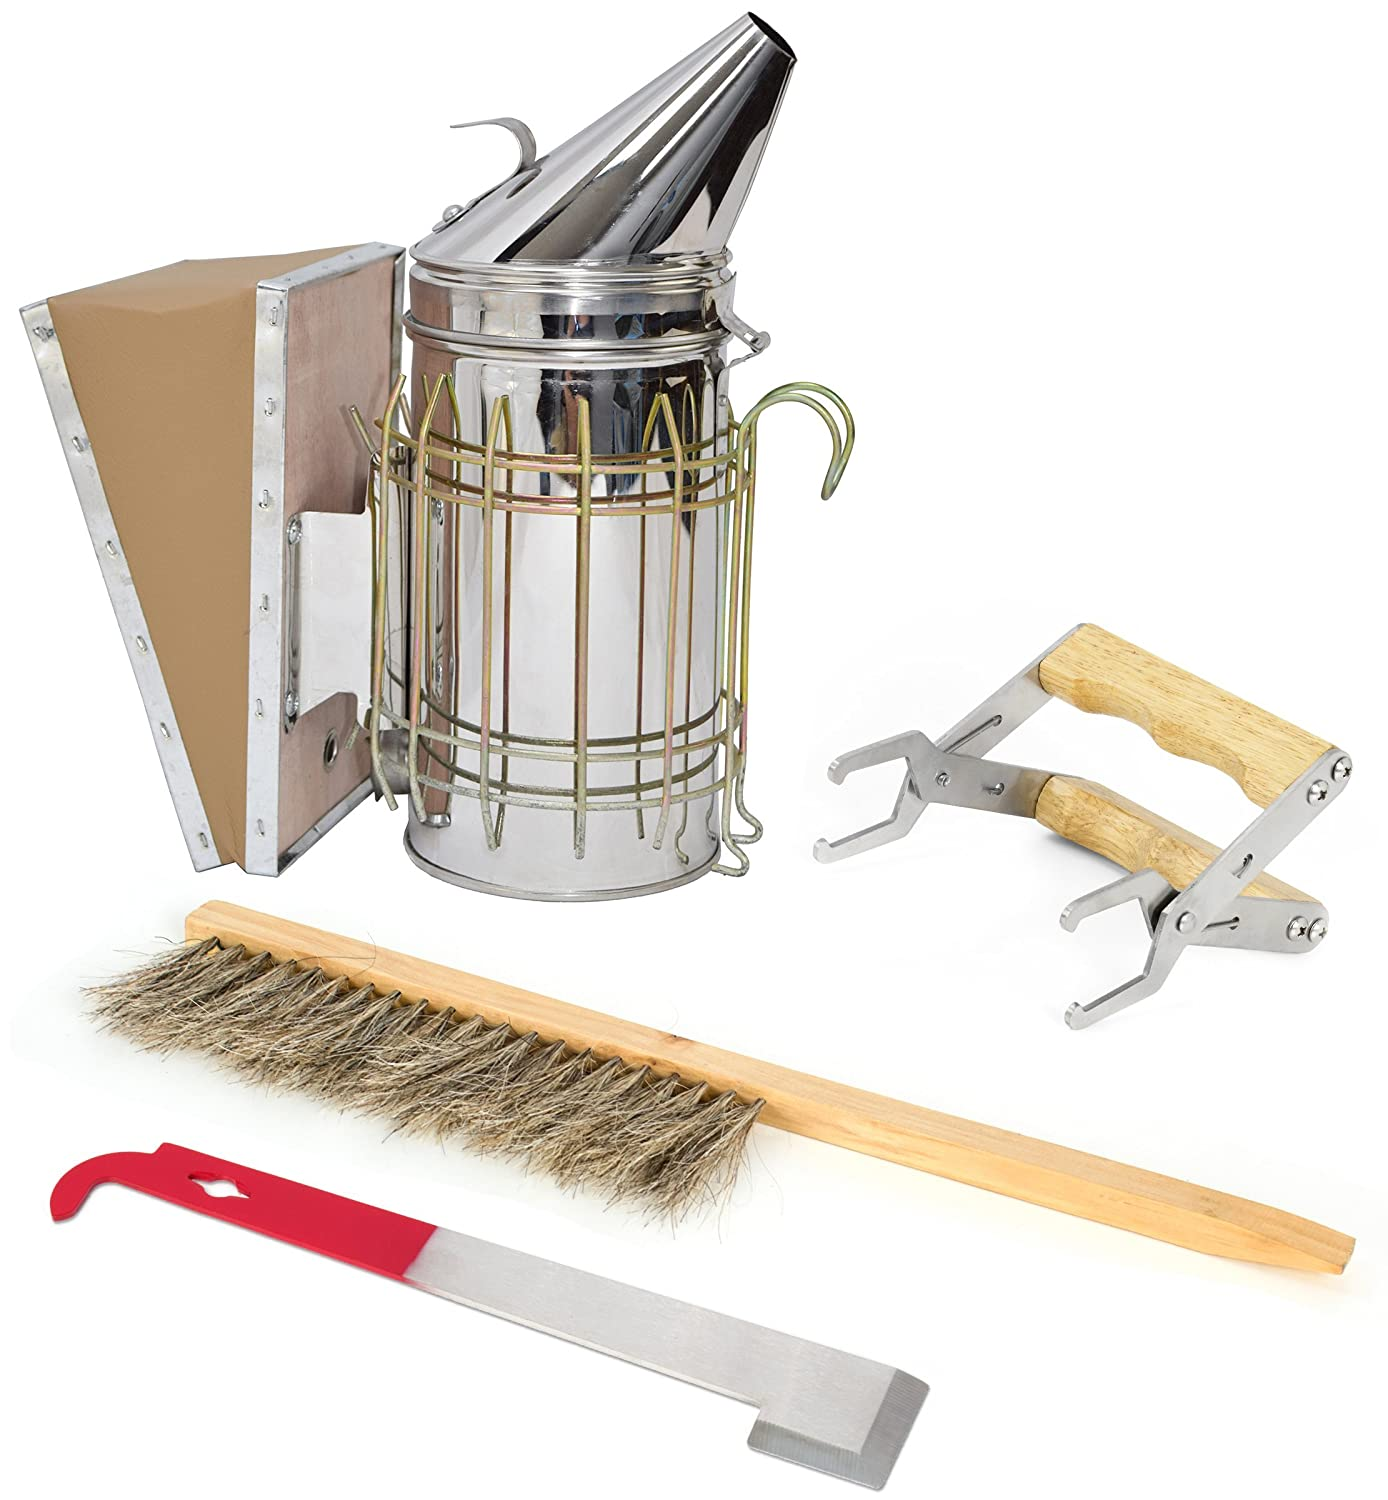 VIVO Beekeeping Starter Tool Kit Set of 4 with Bee Hive Smoker, Brush, Frame Grip, and Stainless Steel J-Hook Lifter Equipment (BEE-KIT2)